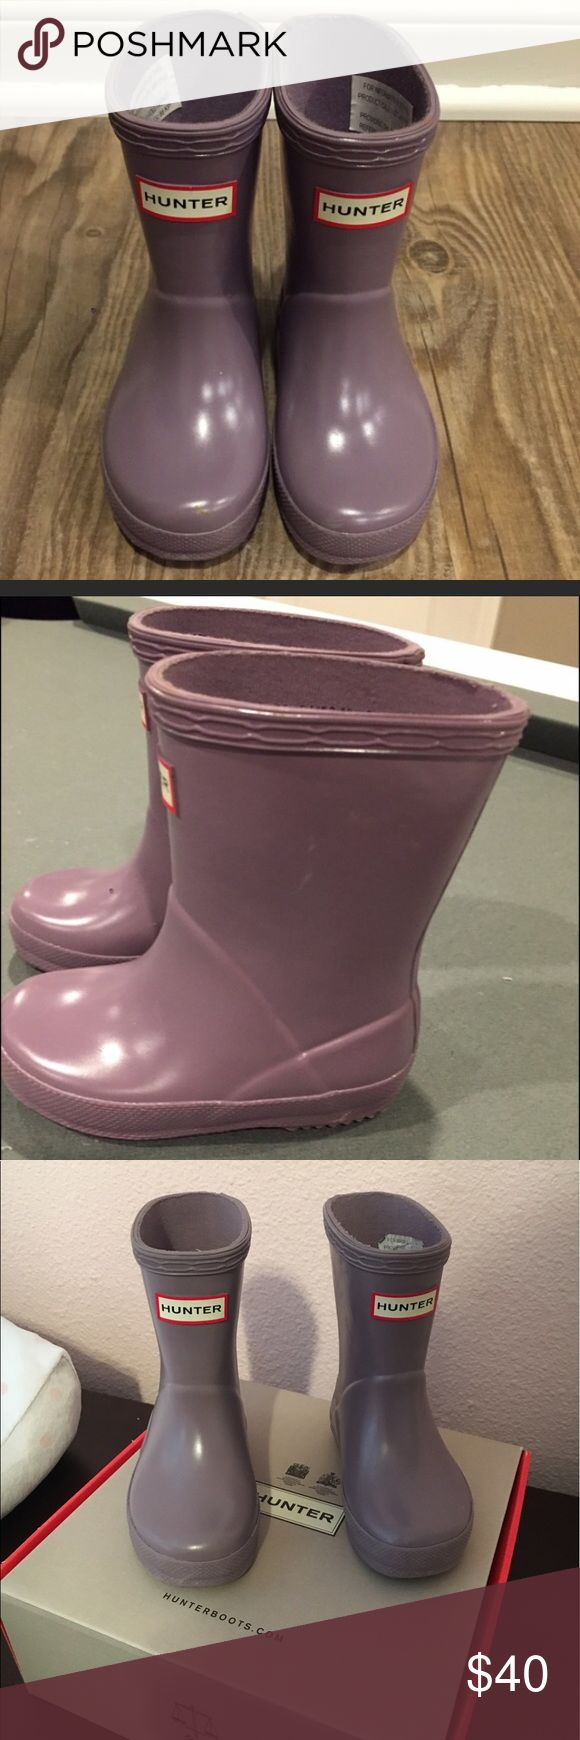 25+ best ideas about Toddler Rain Boots on Pinterest | Holiday ...